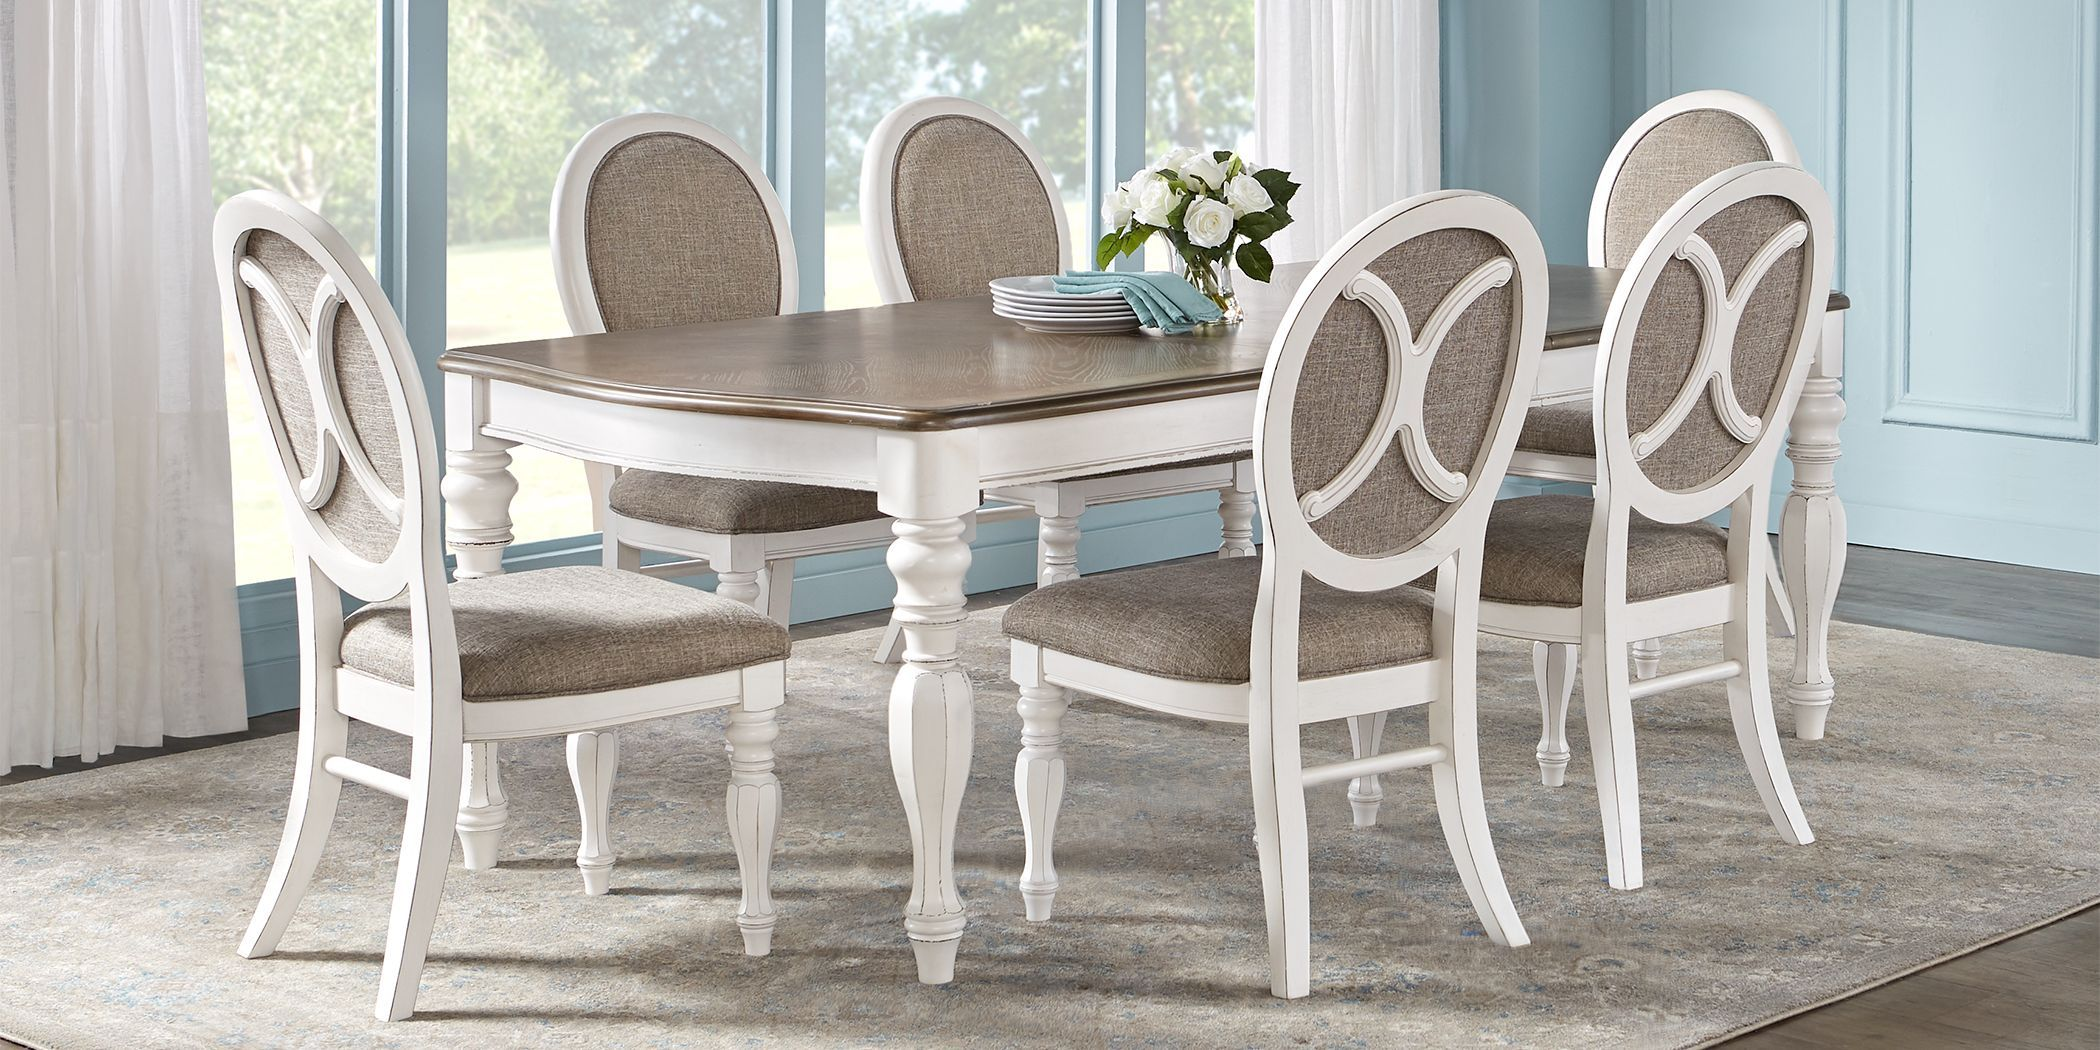 French Market White 5 Pc Rectangle Dining Room In 2021 Round Dining Room Sets Dining Room Sets White Dining Table